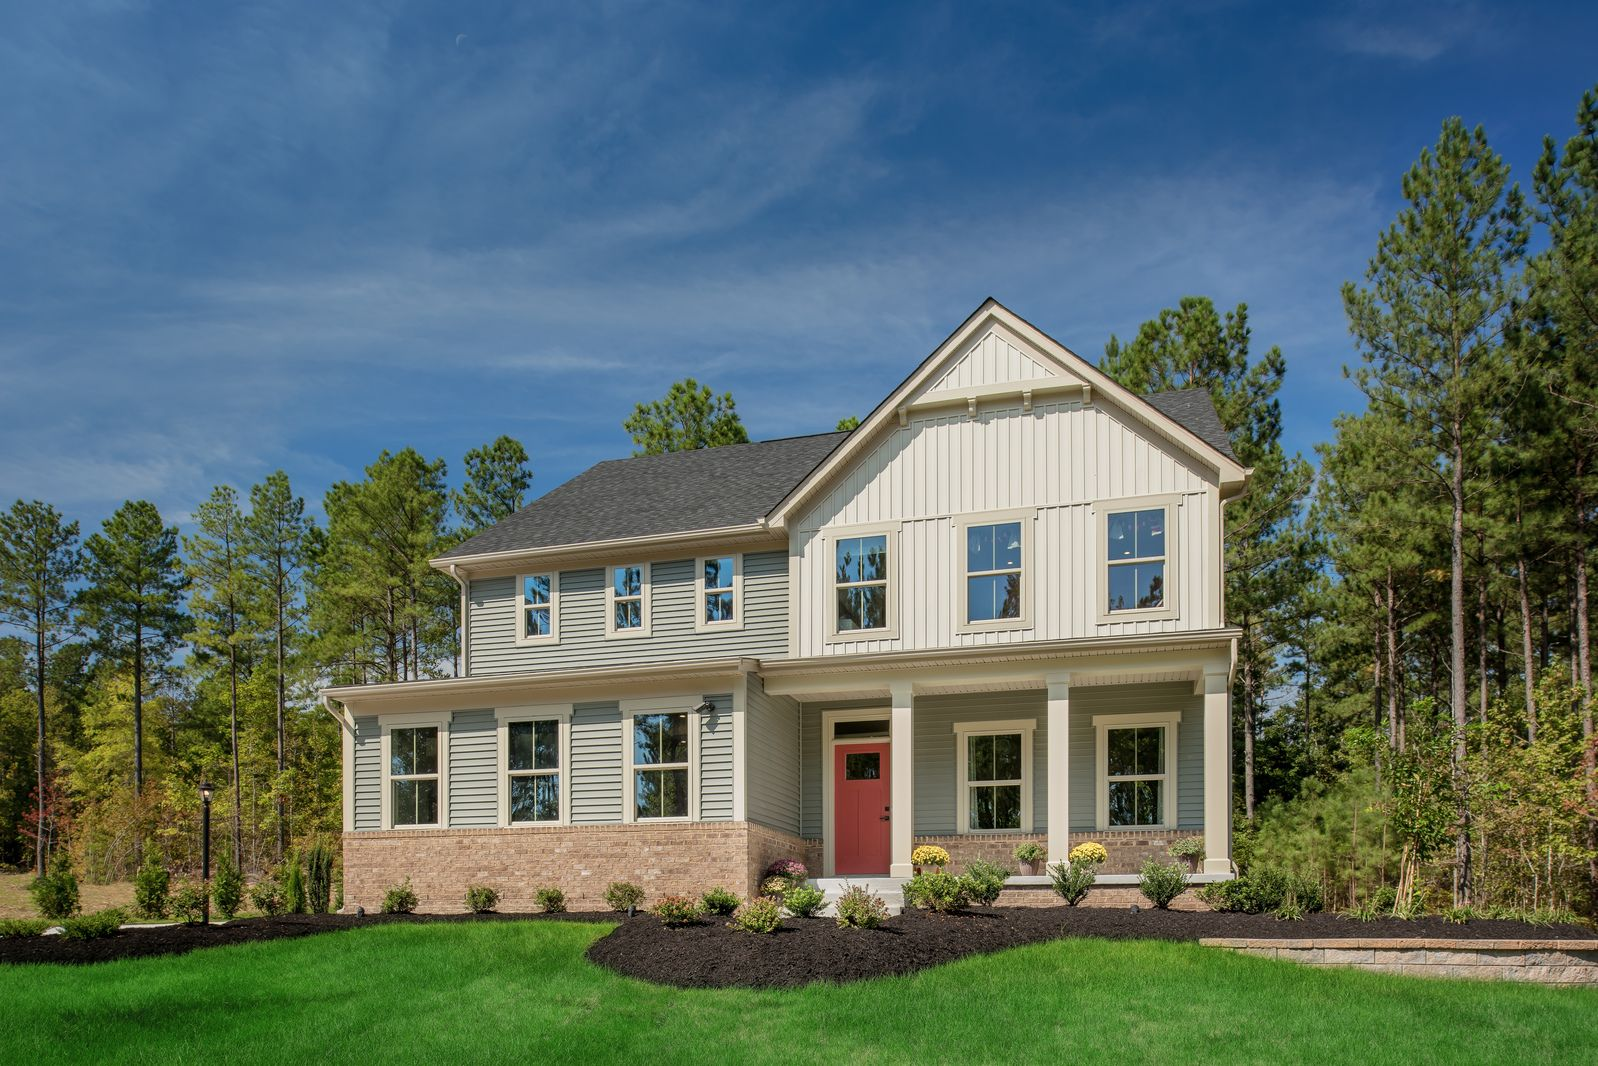 The Highlands: Uncover Chesterfield's Best Kept Secret:Only2 homesites remaining,click here to schedule your visit and receive a $5,000 incentive!Yes, we are open and we're meeting 1-on-1 to ensure your peace of mind.